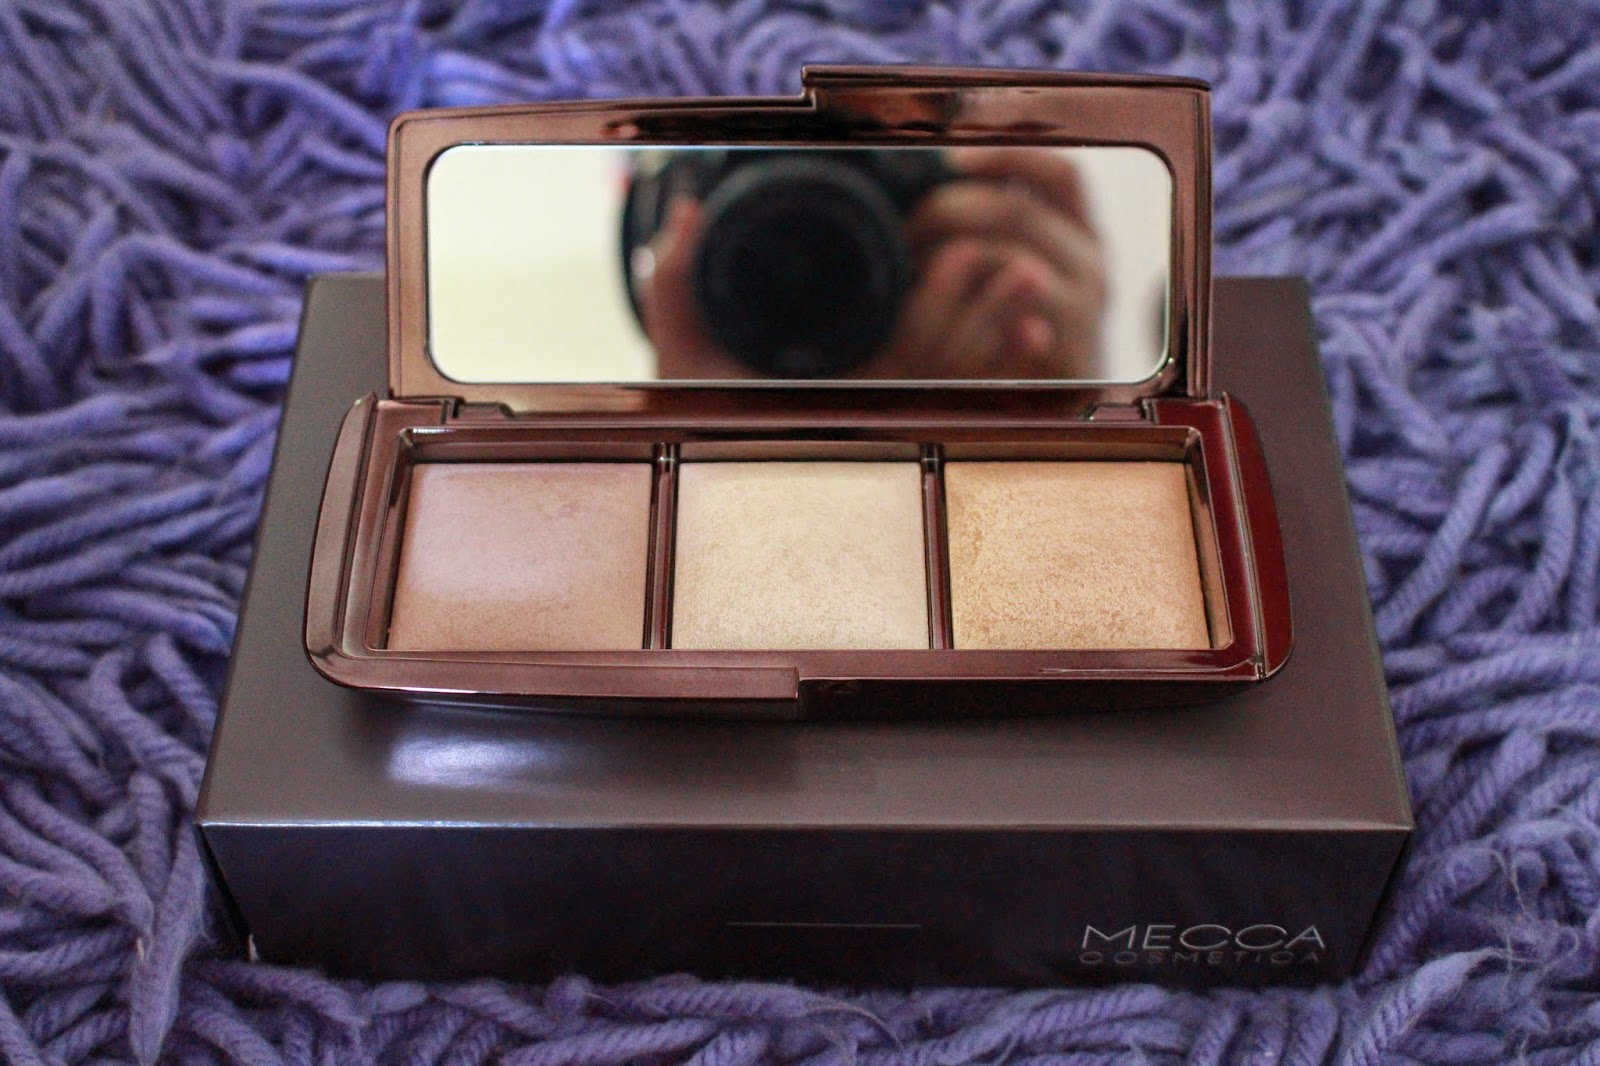 The Hourglass Ambient Lighting Wardrobe